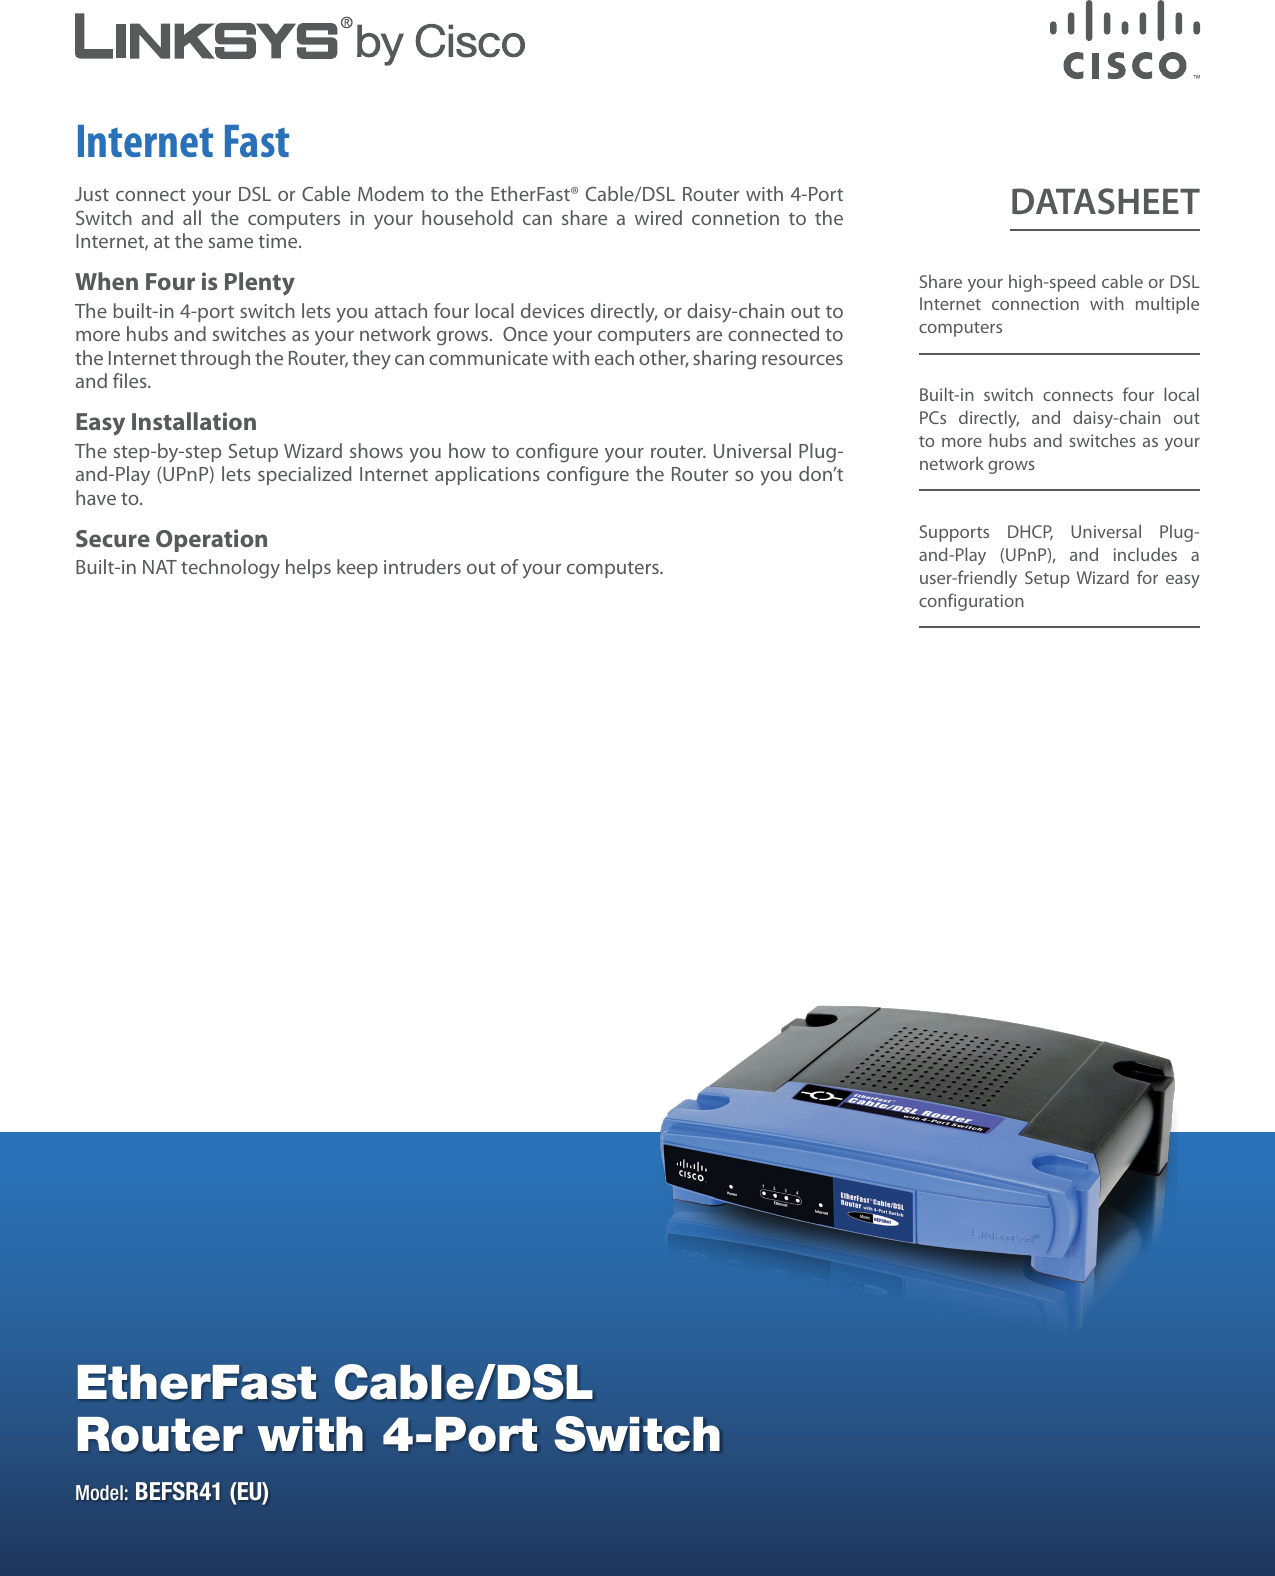 linksys befsr41 etherfast cable dsl router with 4 port switch eu v10 rh usermanual wiki User Guide Icon User Guides Samples